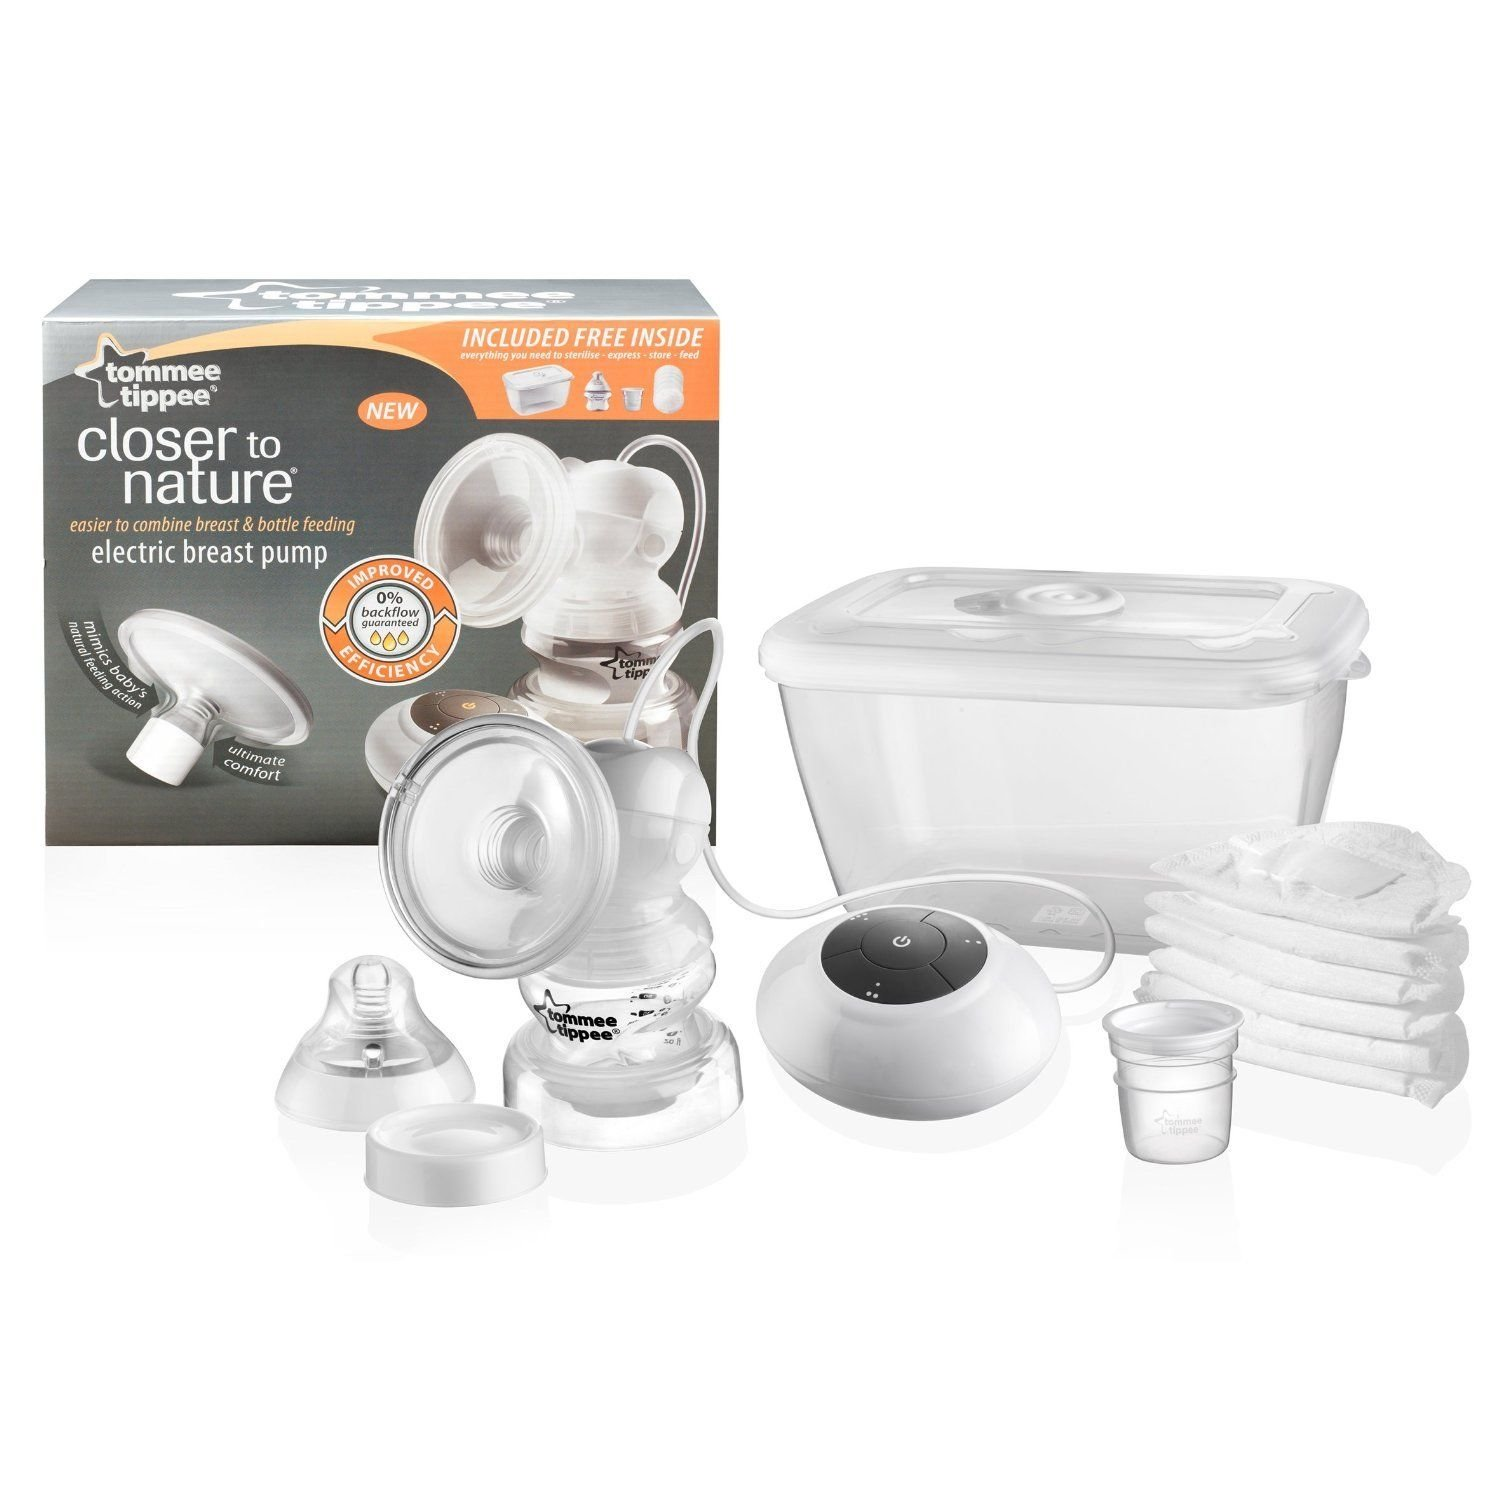 Tommee Tippee Closer to Nature Electric Breast Pump BPA Free Brand New &Improved Good Gift for Mom and Baby Fast Shipping Ship Worldwide